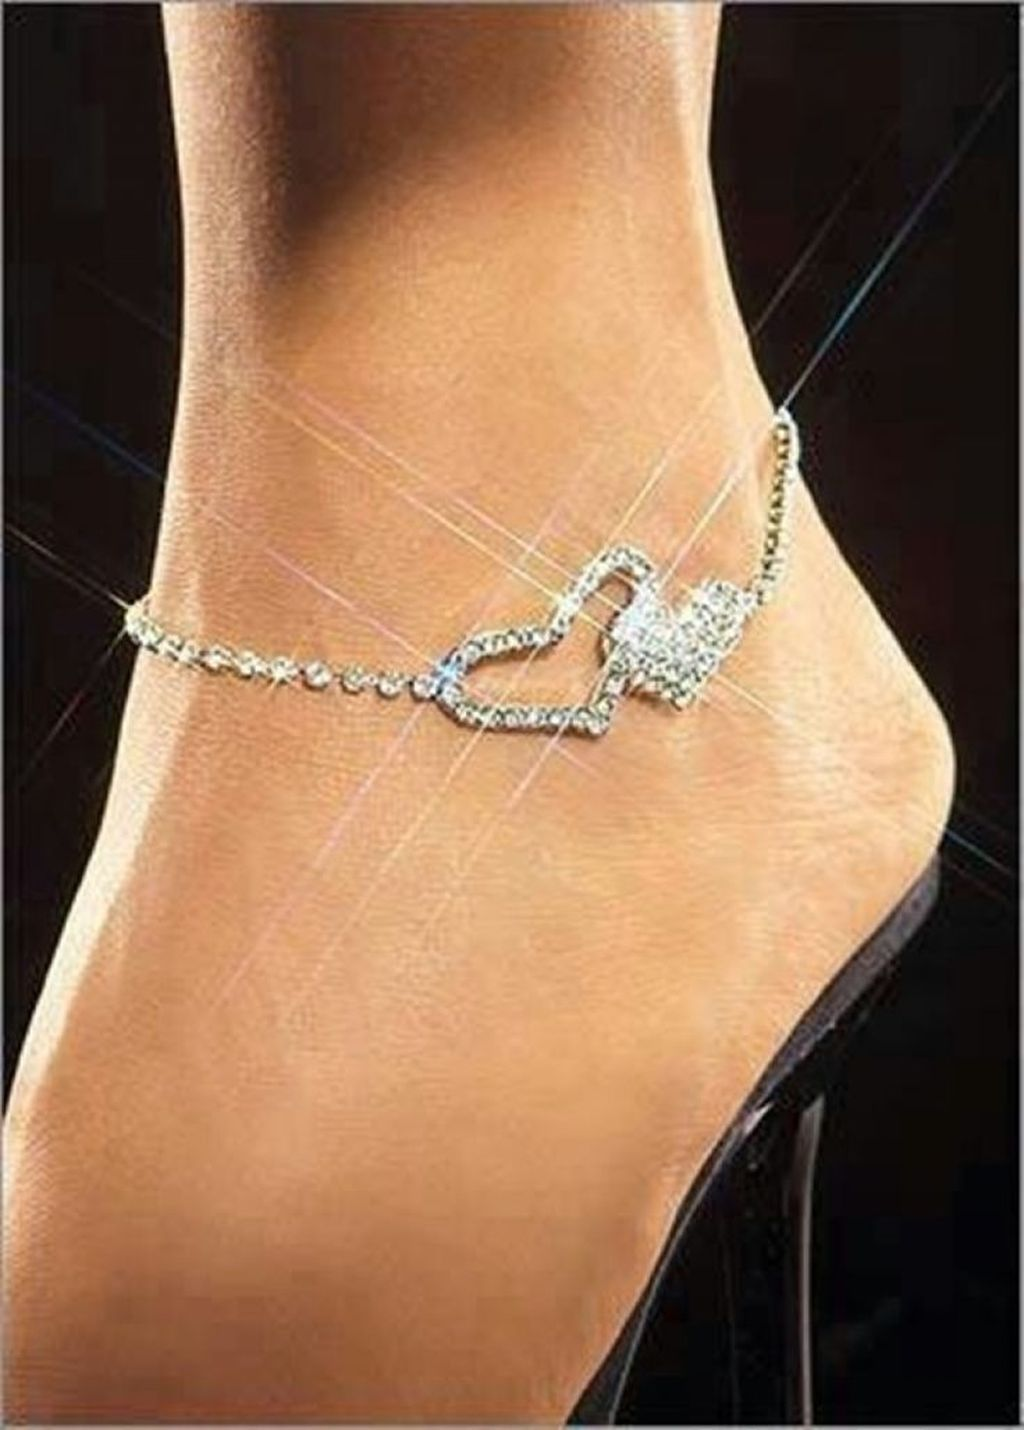 anklet ankle bracelets design chain designs best tattoos bracelet tattoo free exceptional creativefan tag cool